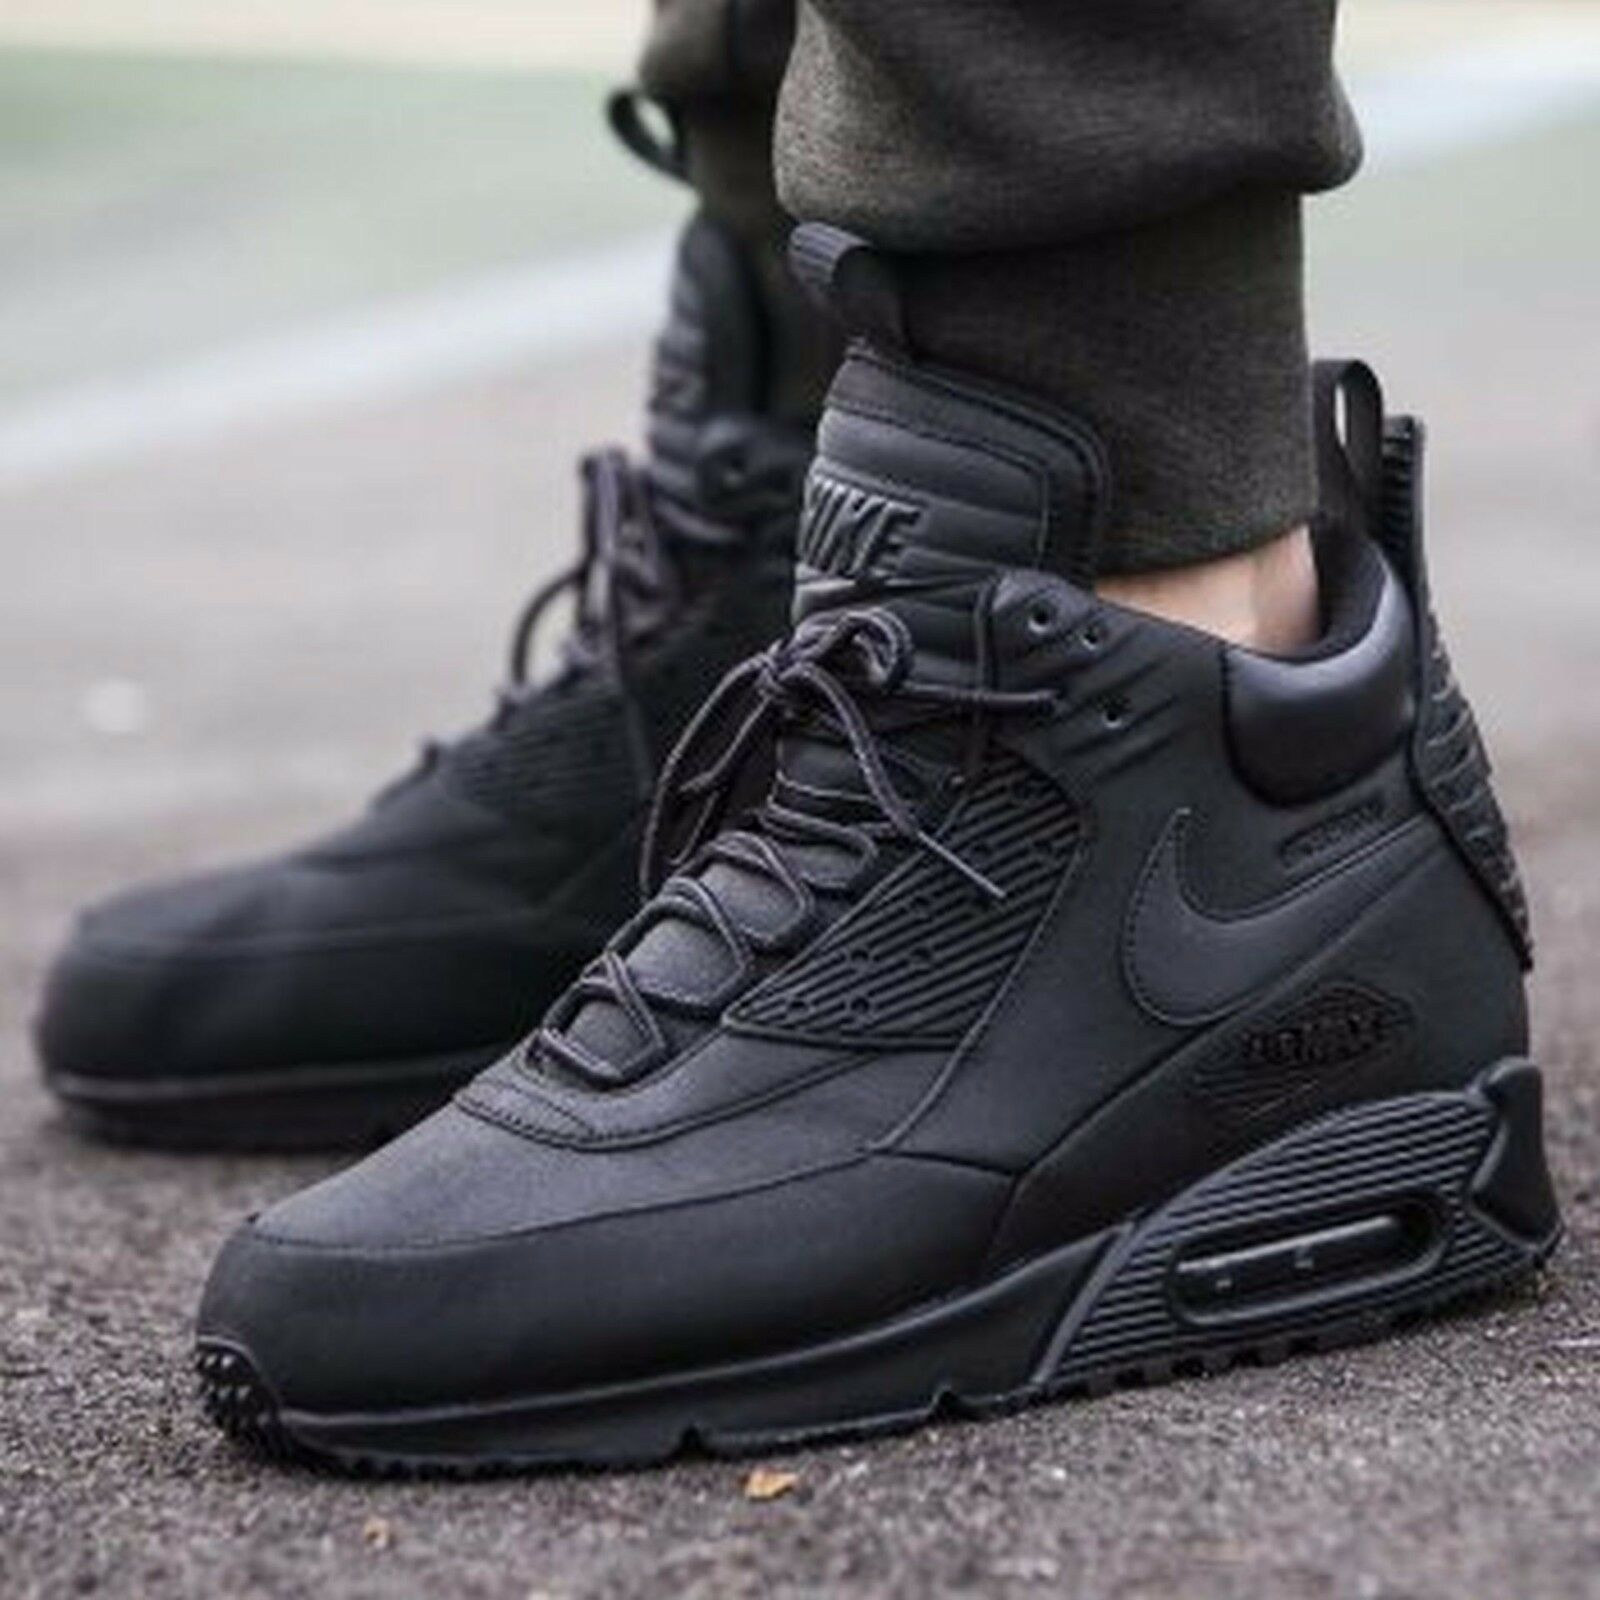 check out f6924 e33c7 ... UPC 887229924856 product image for Nike Men s Air Max 90 Sneakerboot  Winter Sz 9.5   upcitemdb ...